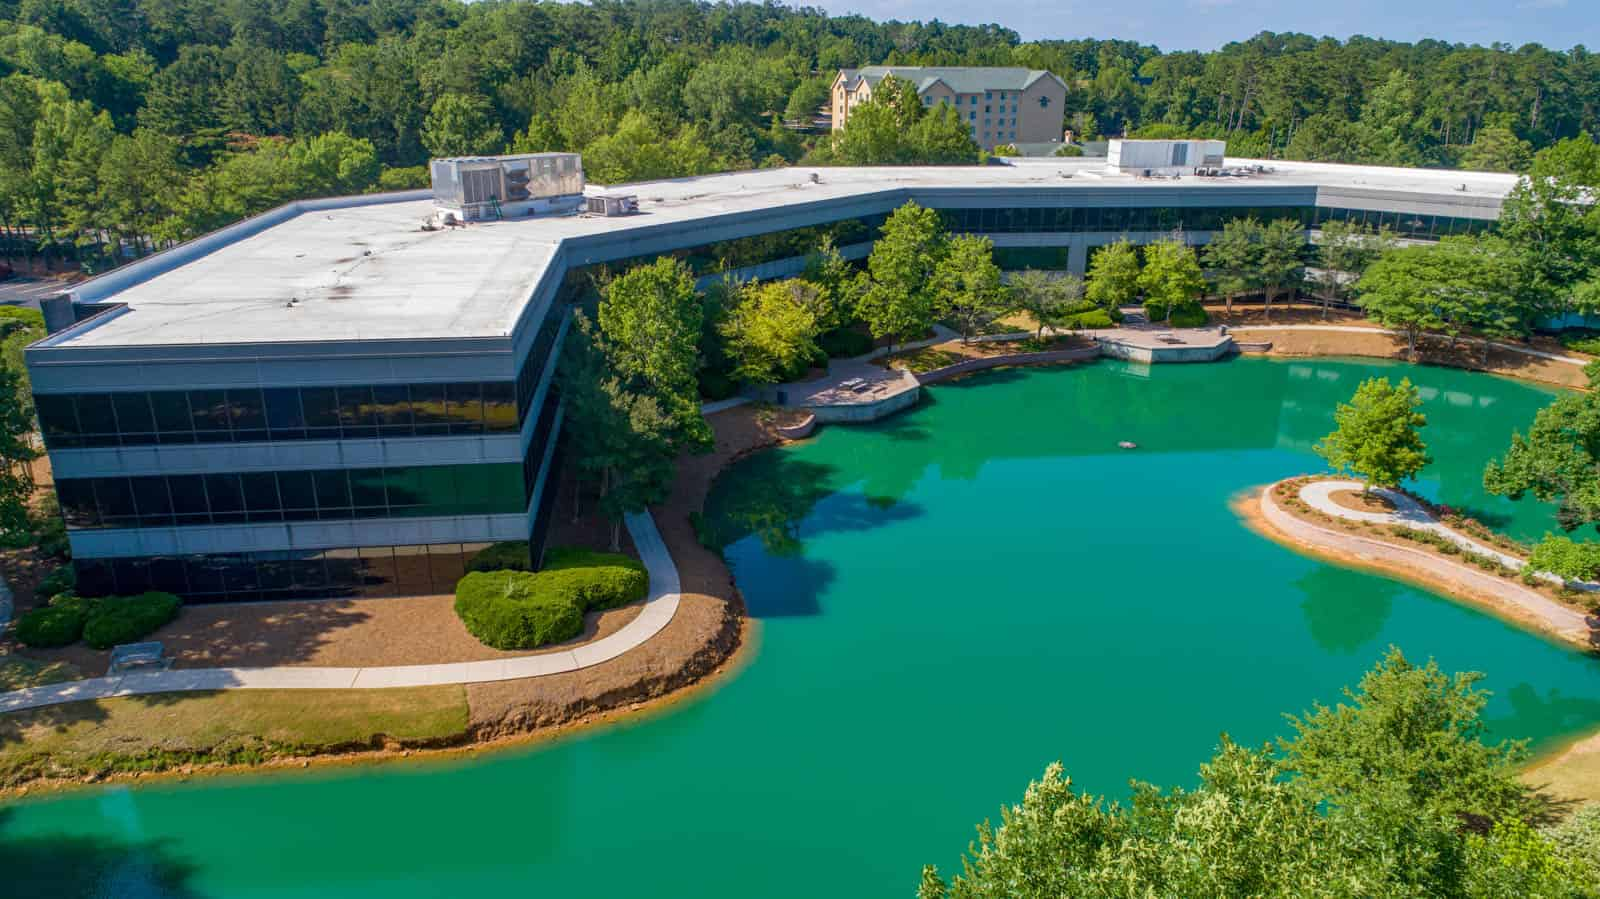 drone photo of office building with vibrant green pond video in foreground in Birmingham, Alabama